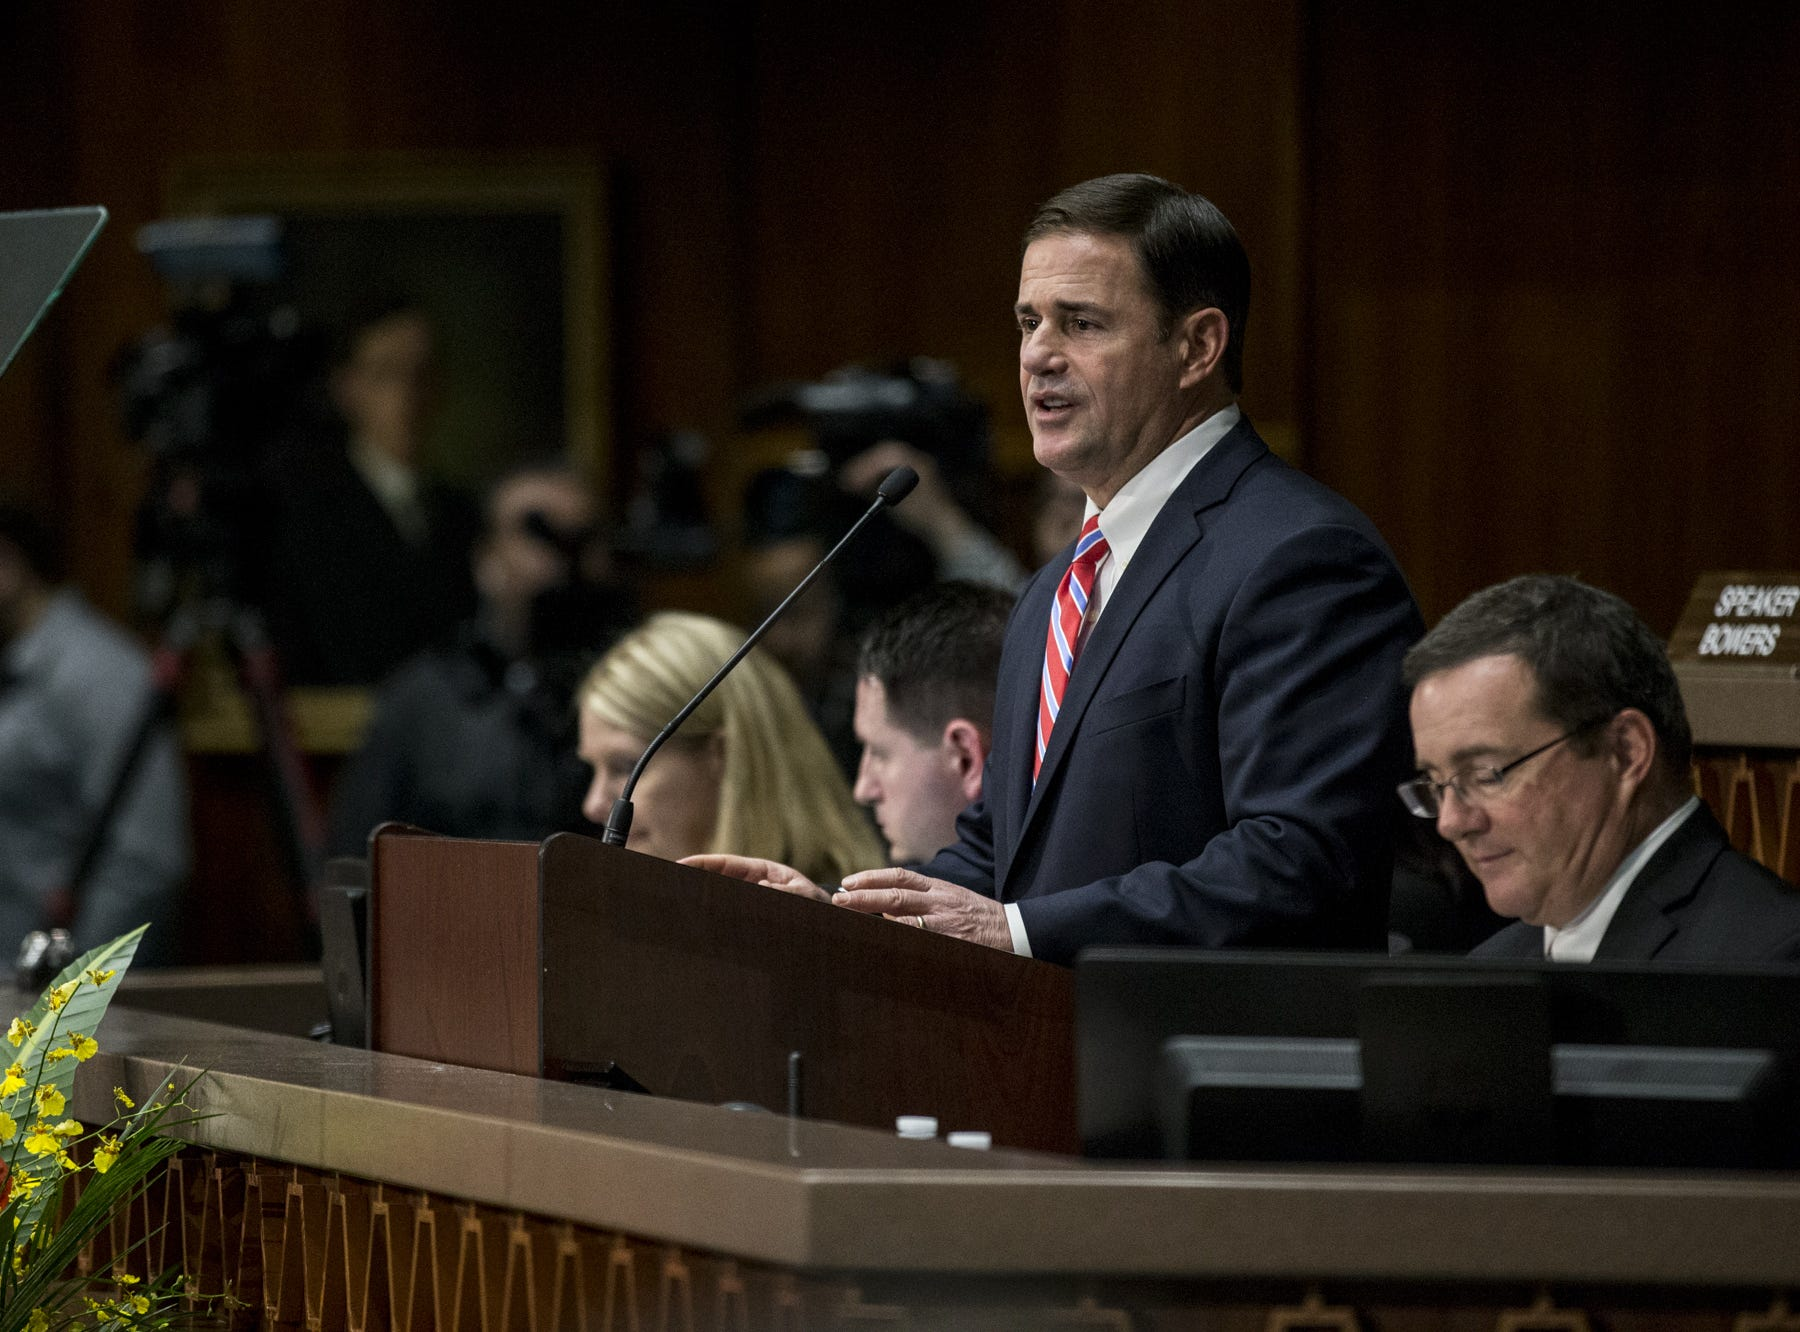 Gov. Doug Ducey gives his State of the State address on Jan. 14, 2019, at the Arizona House of Representatives Chambers in Phoenix.